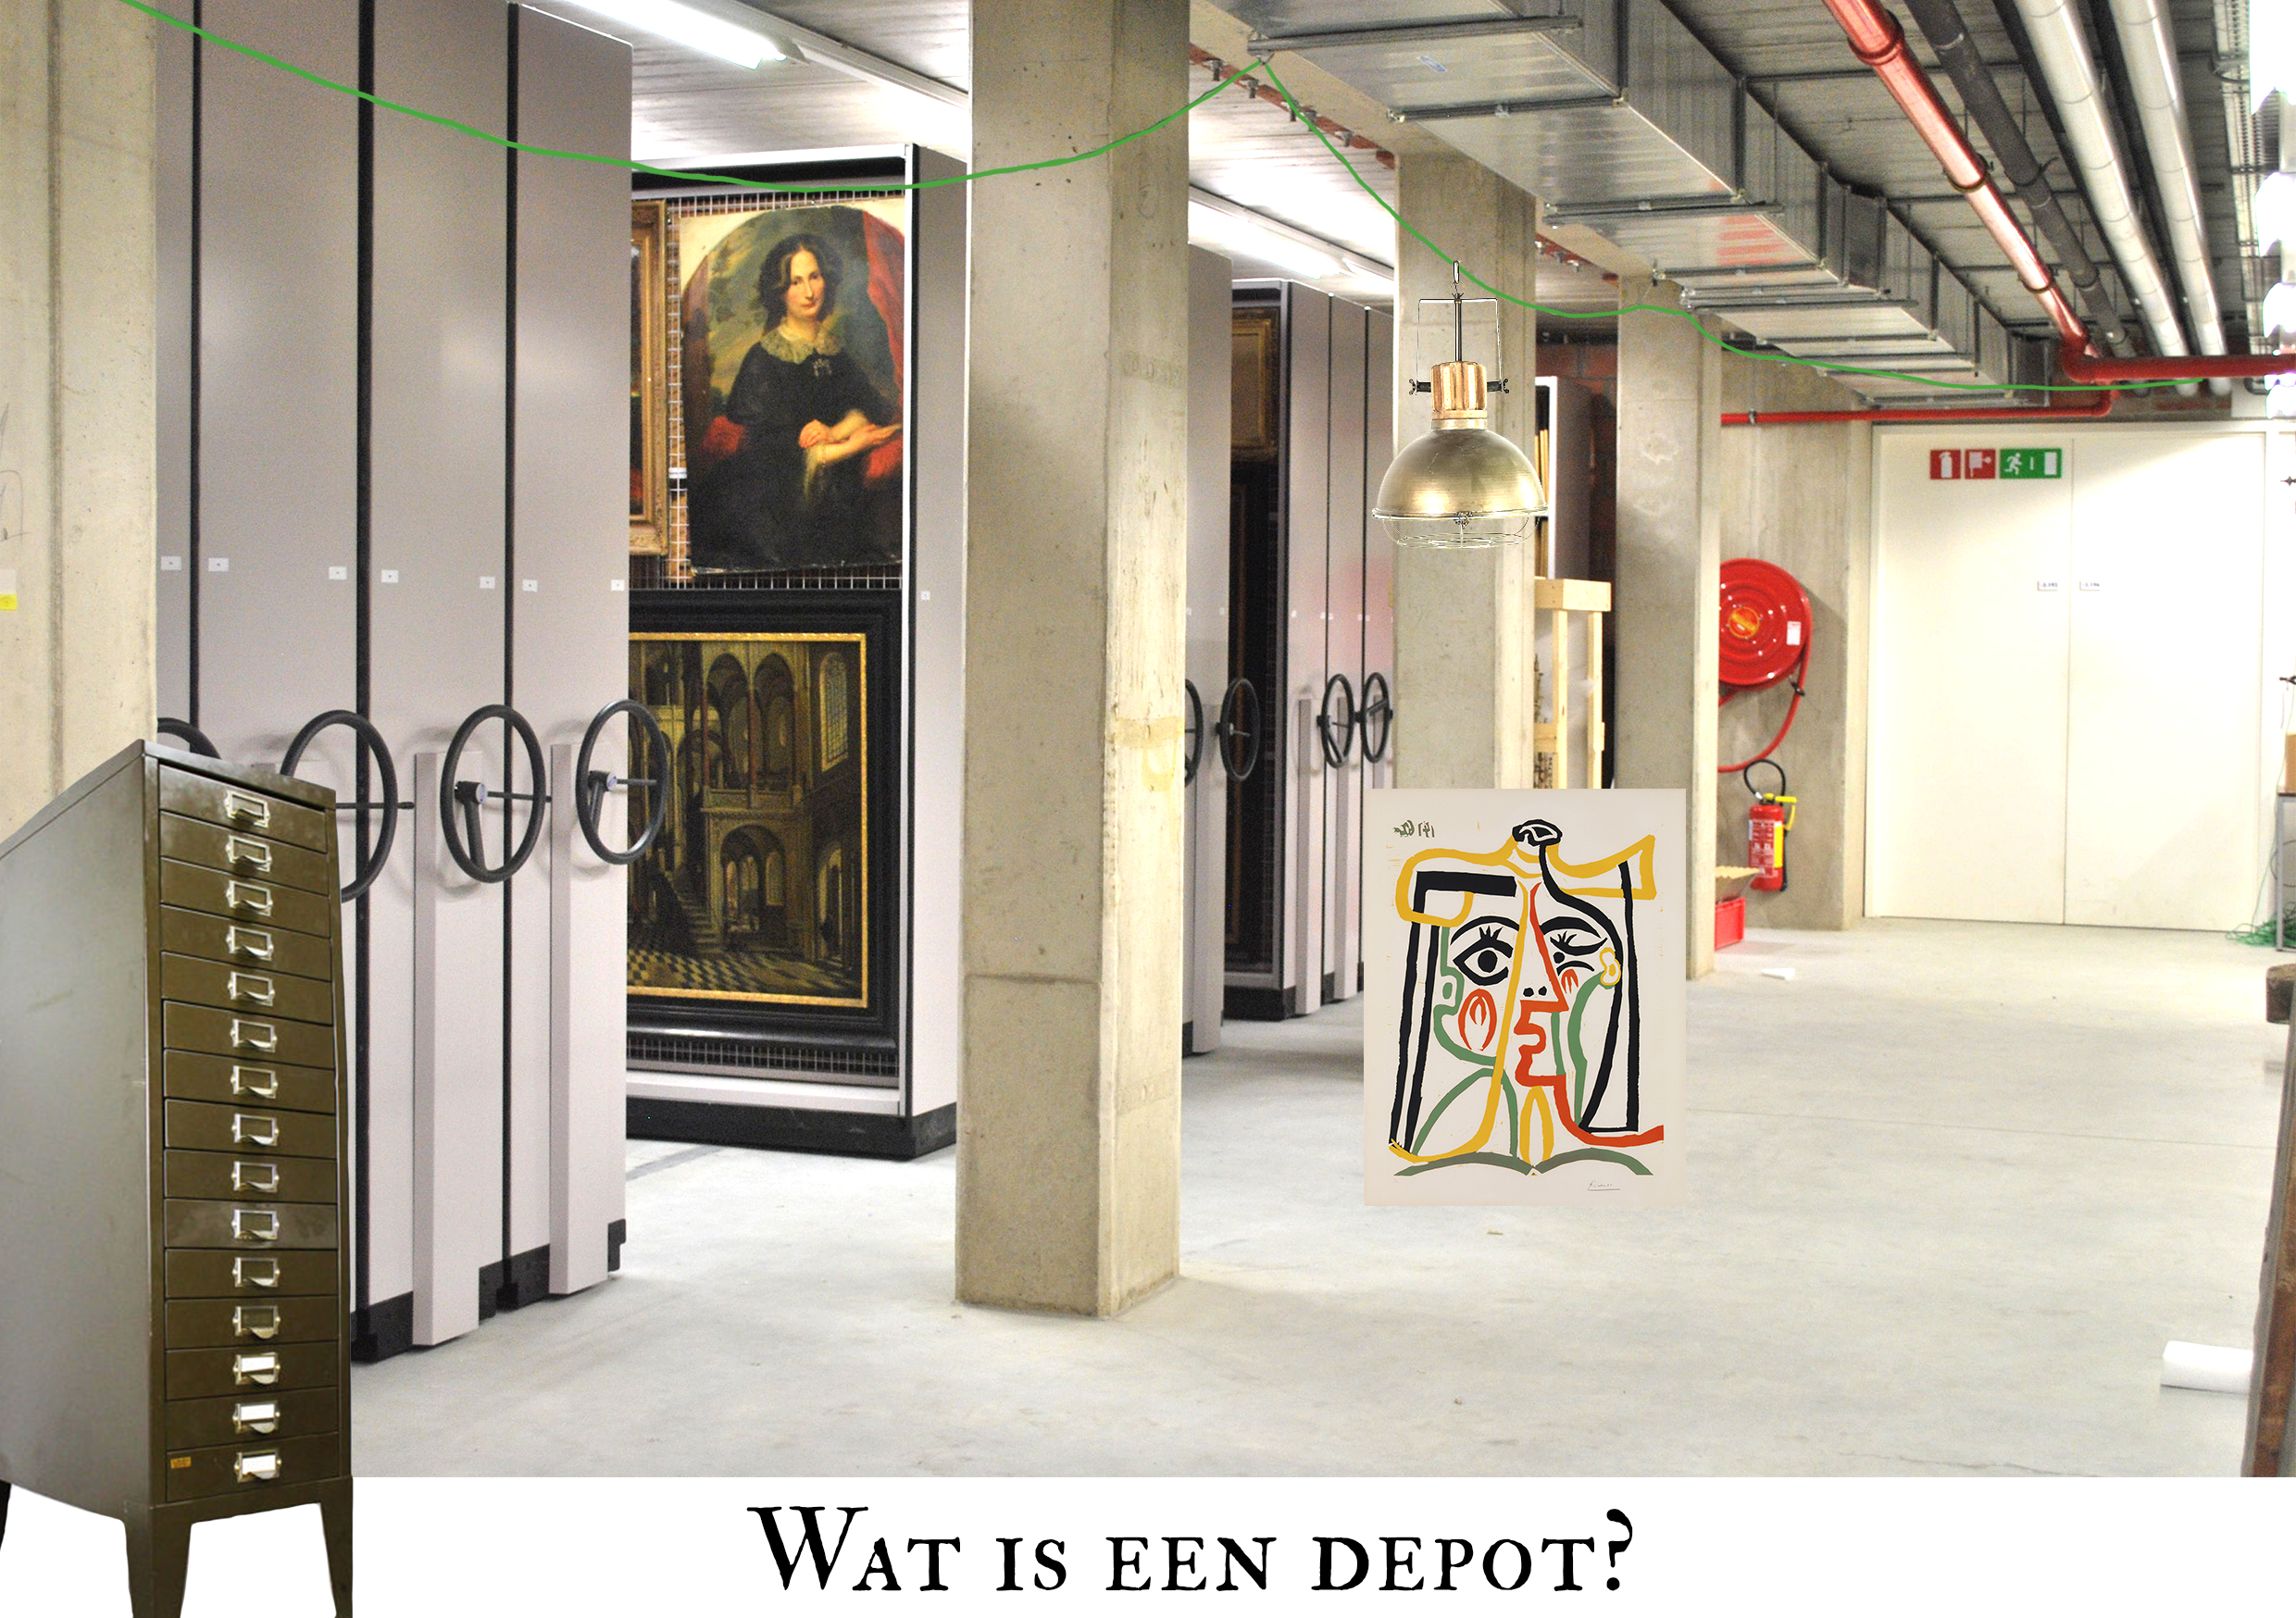 Wat is een depot illustratie